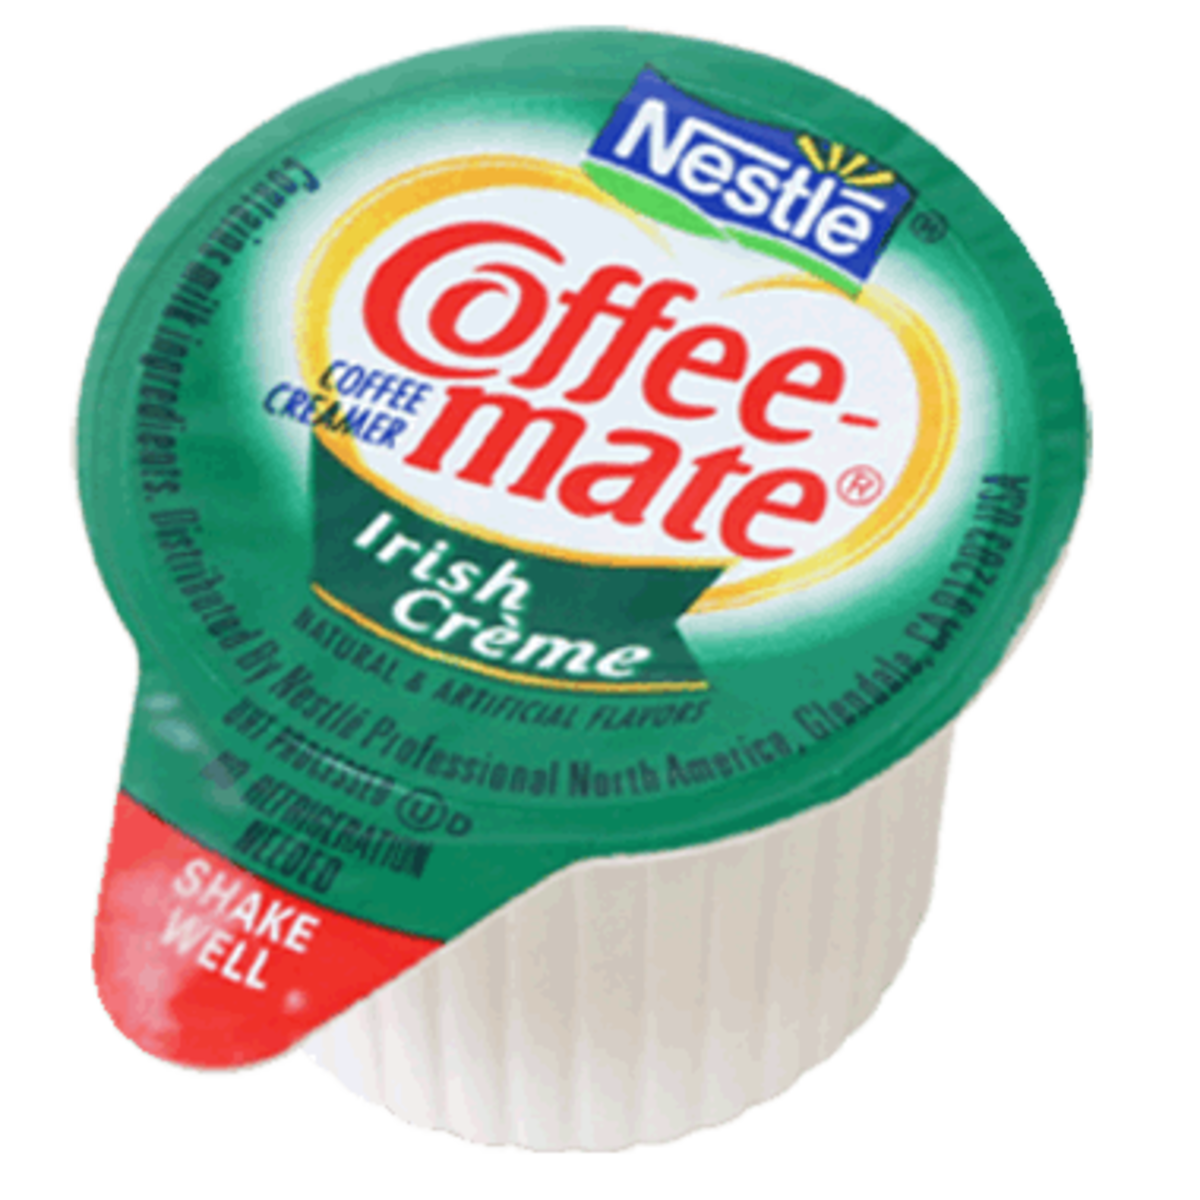 Coffee-Mate Irish Créme